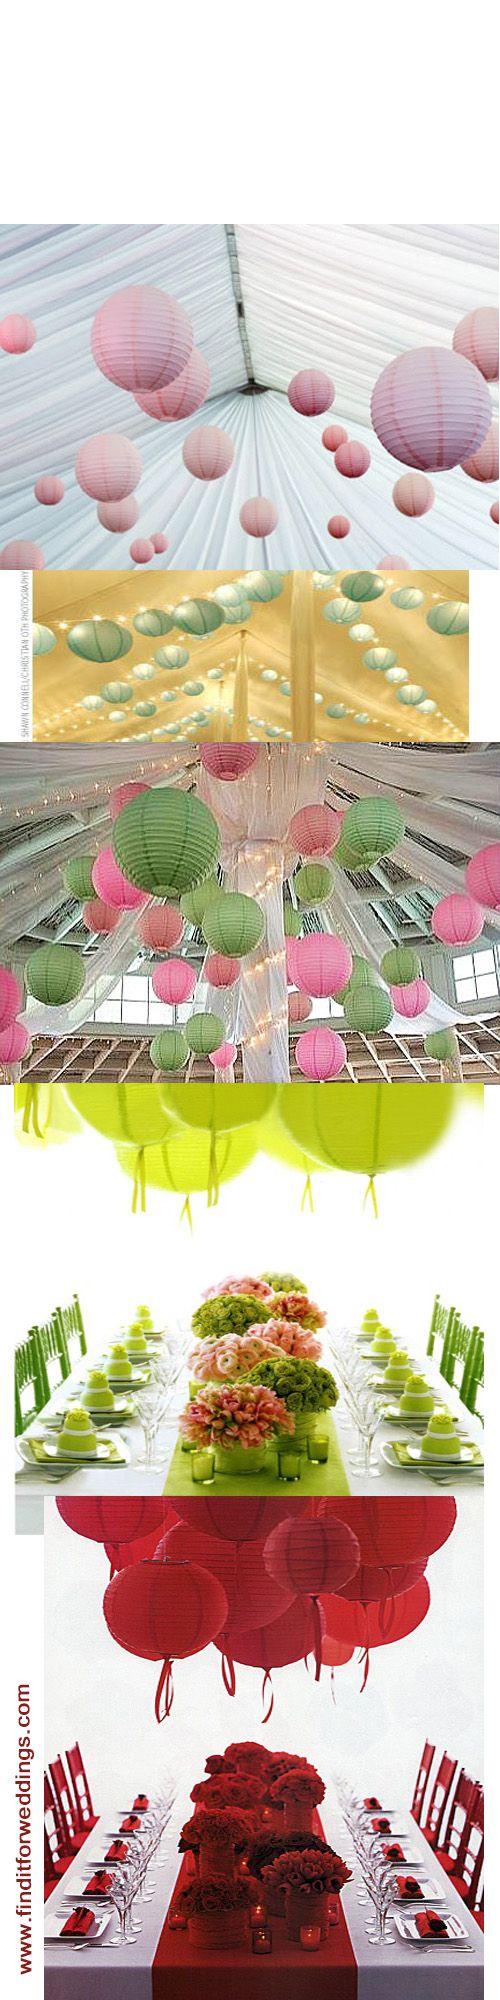 cheap #DIY #wedding decorations that look great